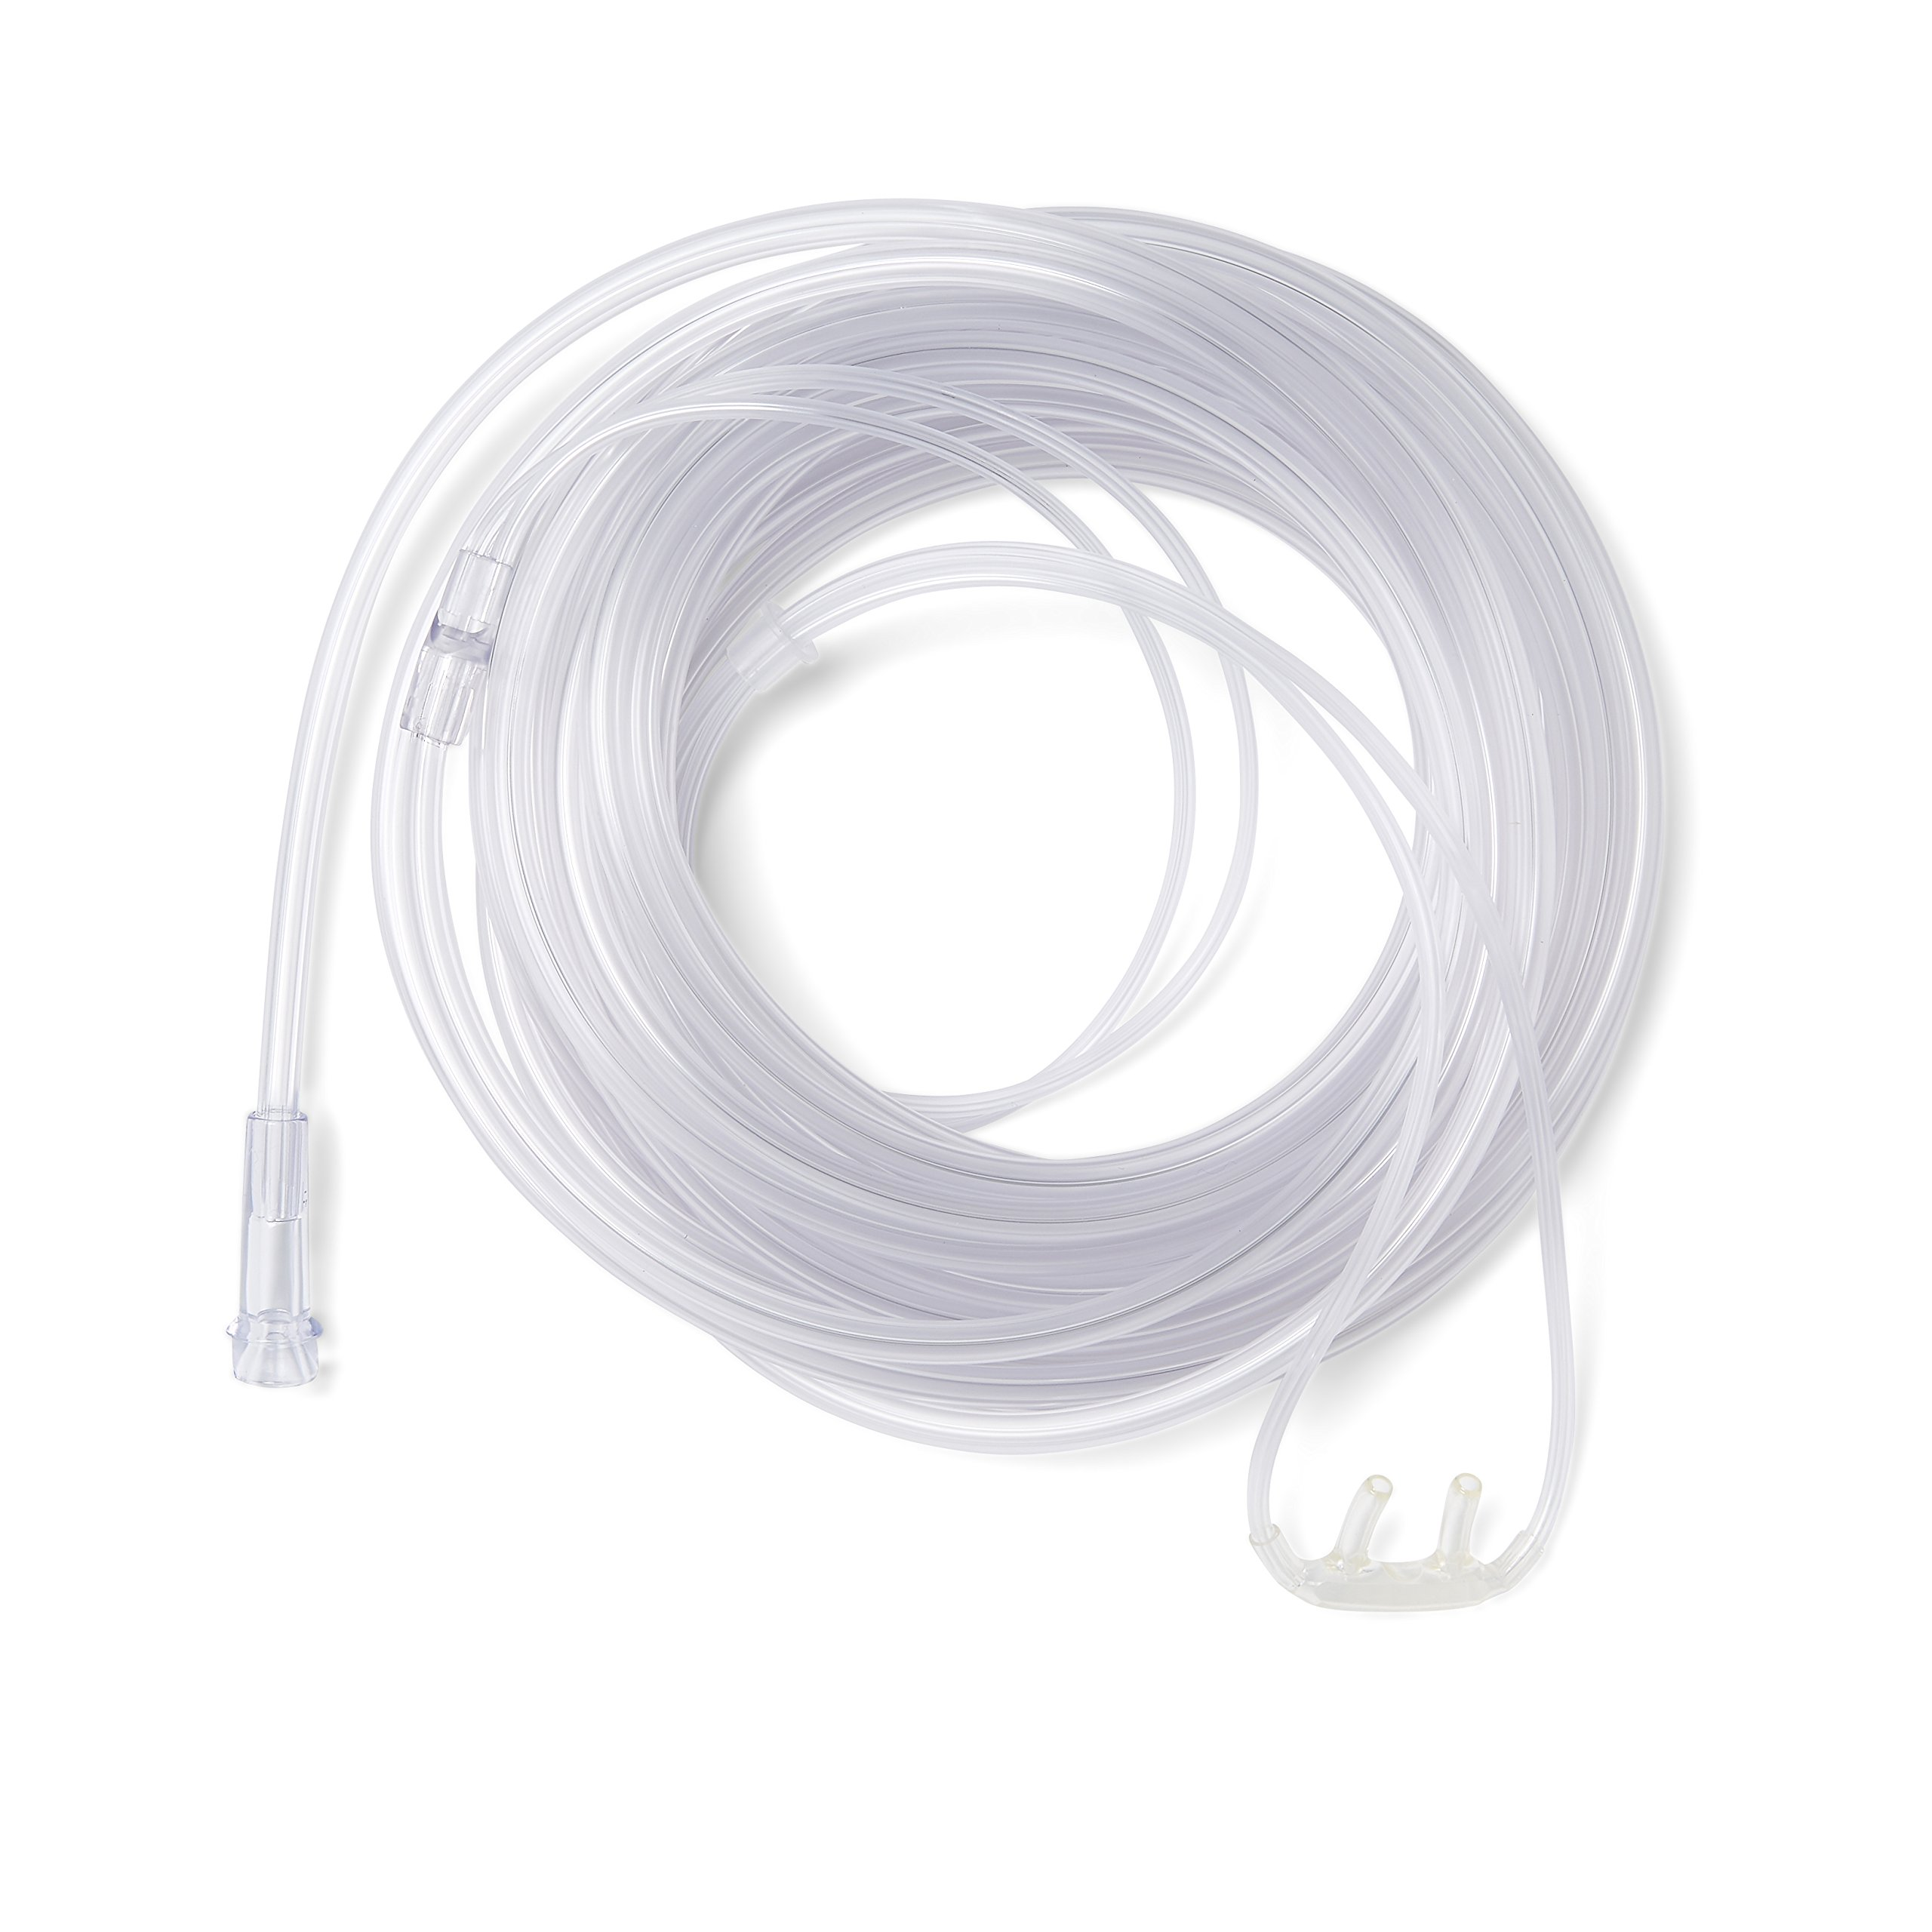 Medline Soft-Touch Nasal Oxygen Cannula, Standard Connector, 25-ft. Tubing Length, Adult Size, Pack of 25